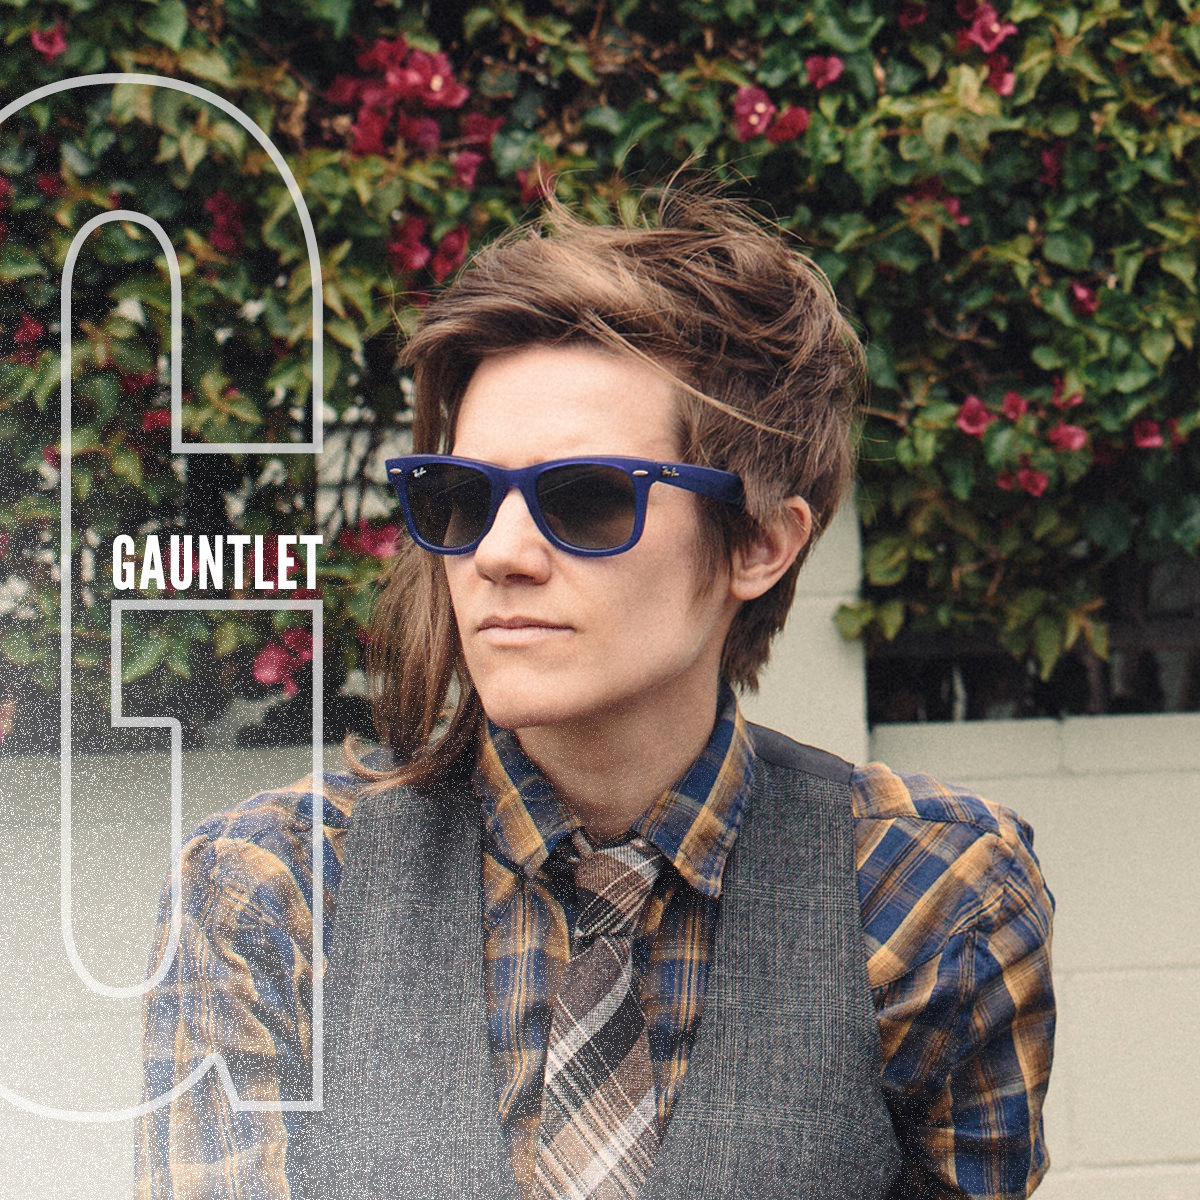 cameron esposito fiancecameron esposito wife, cameron esposito and rhea butcher, cameron esposito stand up, cameron esposito podcast, cameron esposito instagram, cameron esposito height, cameron esposito wedding, cameron esposito mother's day, cameron esposito, cameron esposito wiki, cameron esposito craig ferguson, cameron esposito youtube, cameron esposito age, cameron esposito conan, cameron esposito partner, cameron esposito fiance, cameron esposito tour, cameron esposito jay leno, cameron esposito ferguson, cameron esposito imdb